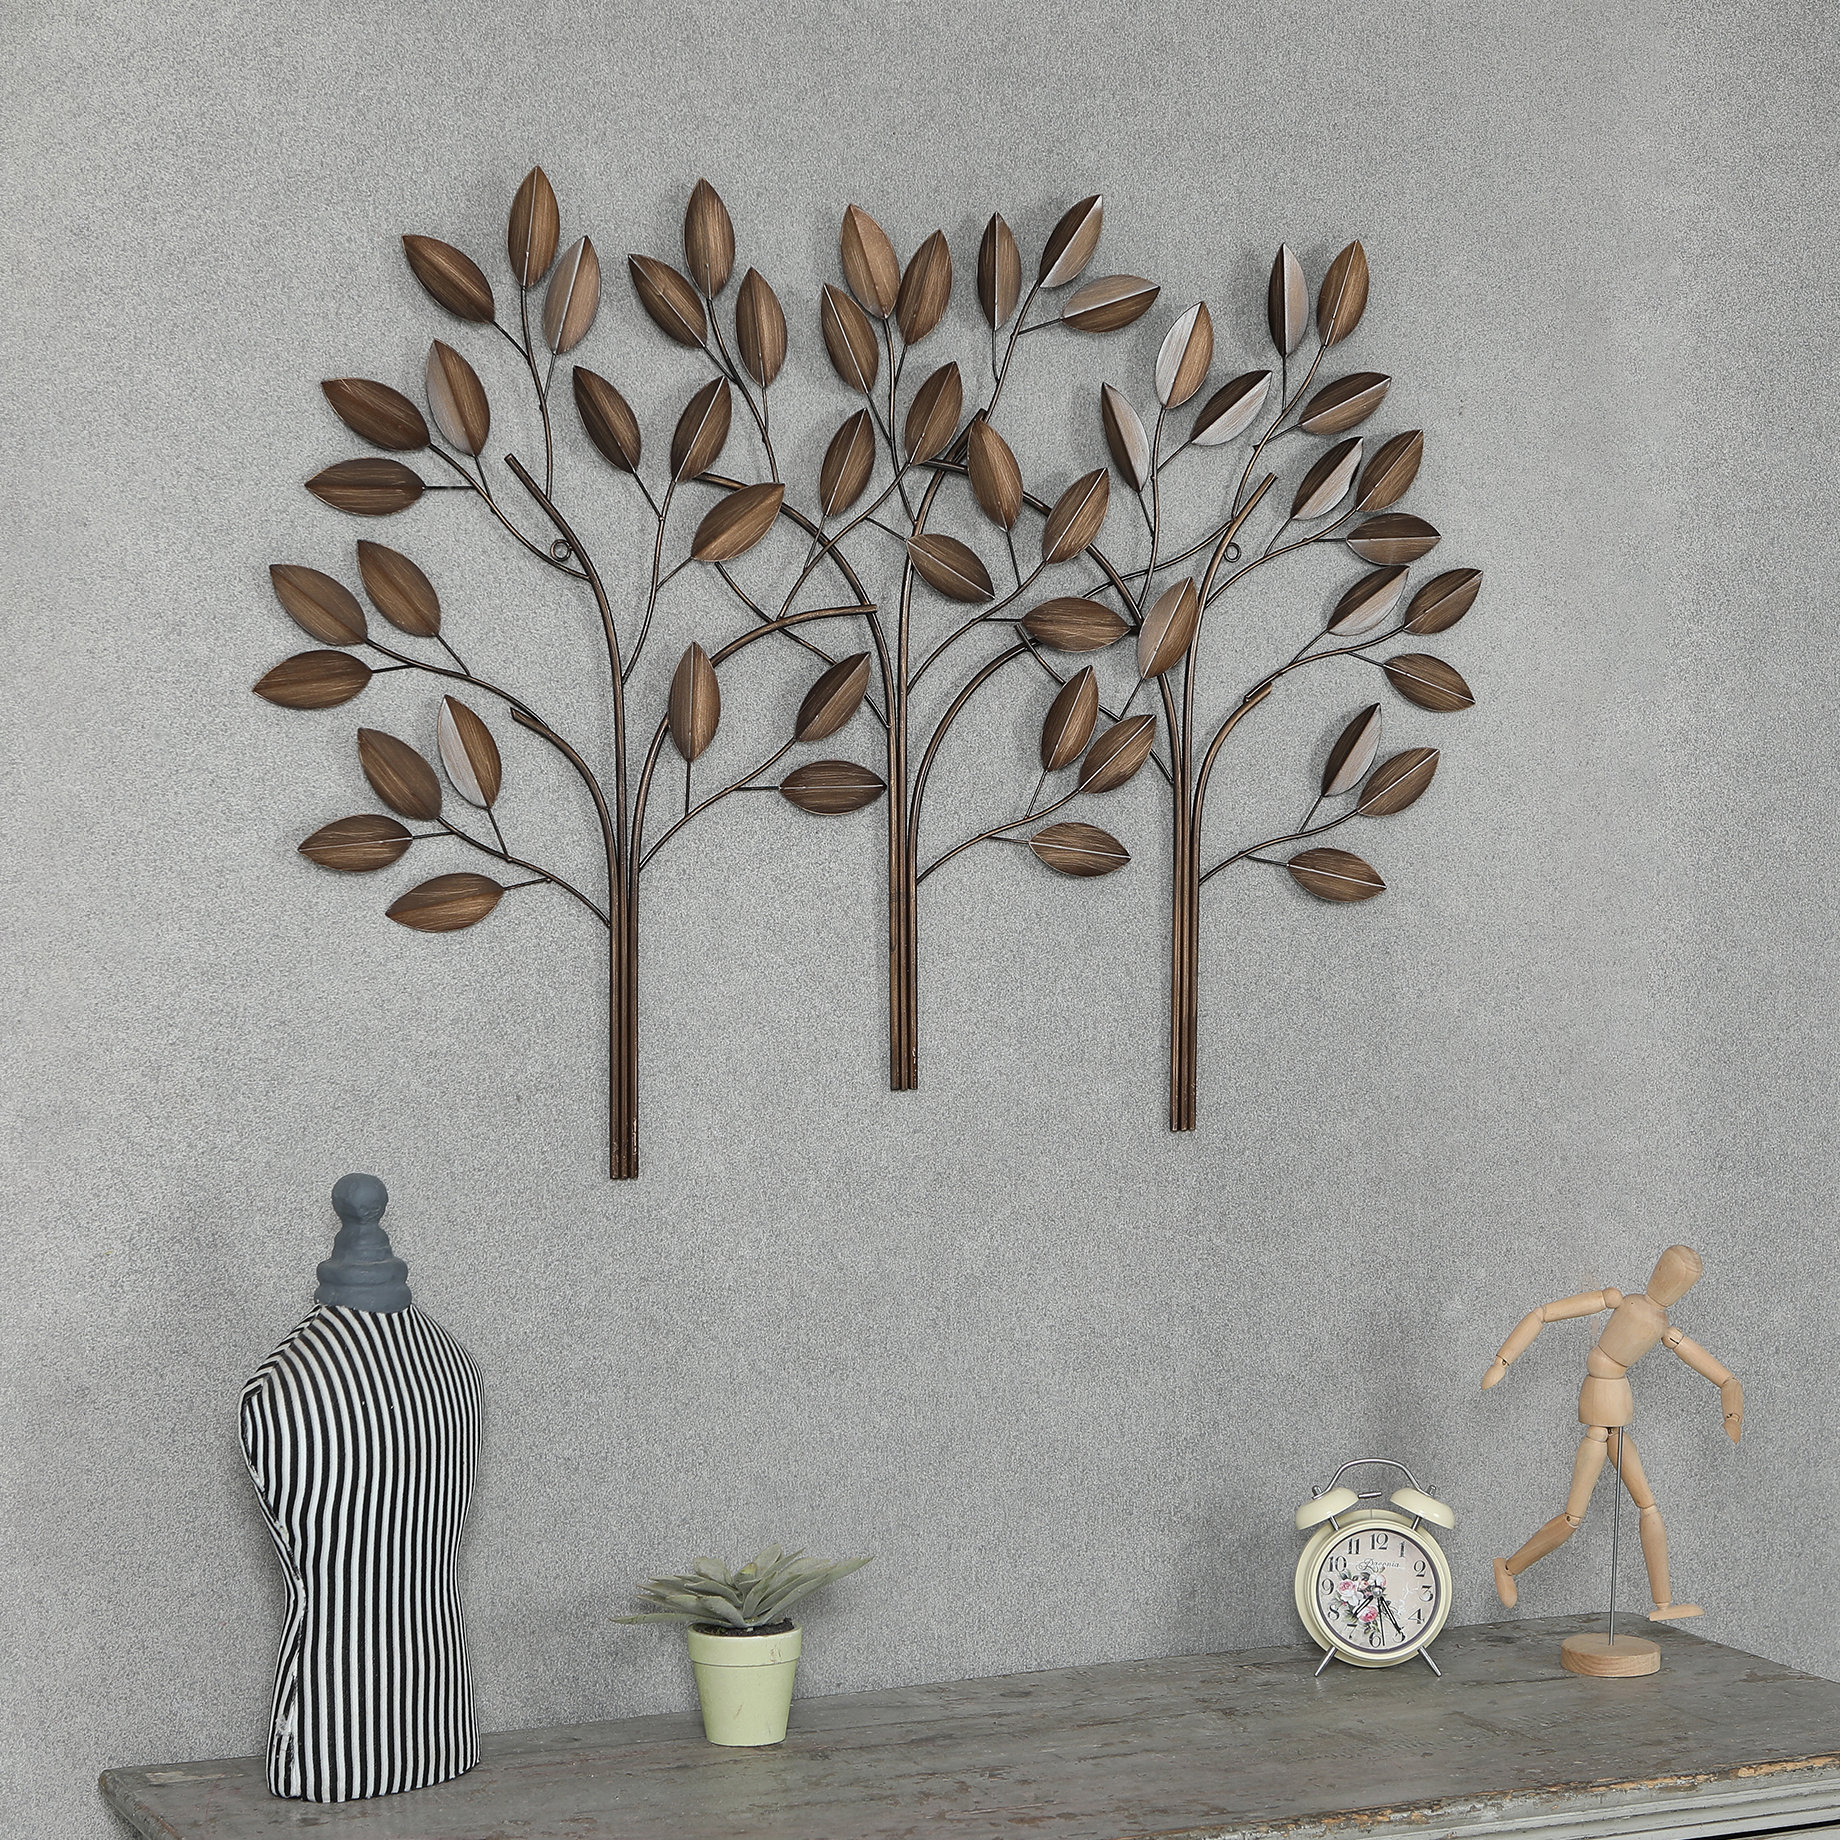 Metal Trees Wall Décor Regarding Leaves Metal Sculpture Wall Decor By Winston Porter (View 2 of 30)